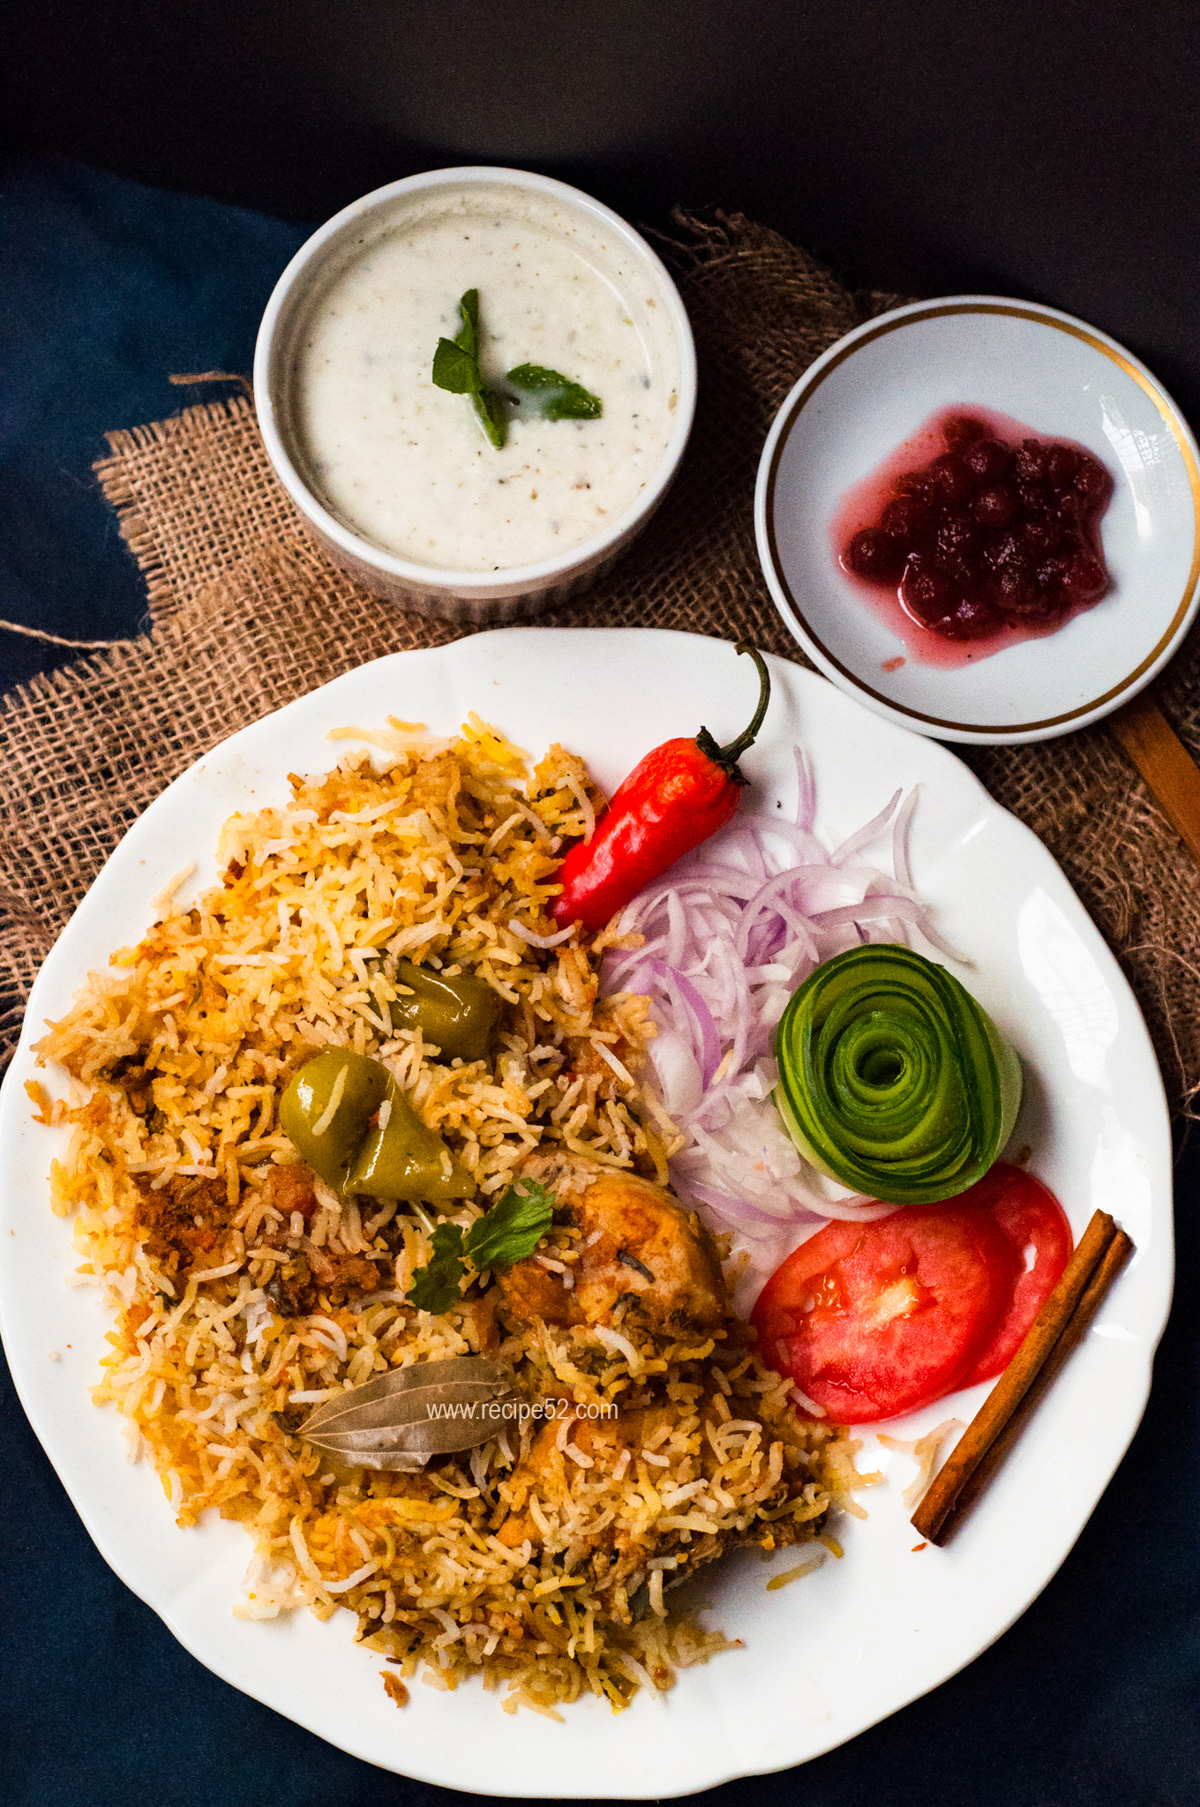 Pakistani Chicken biryani served in a plate with condiments on the side.